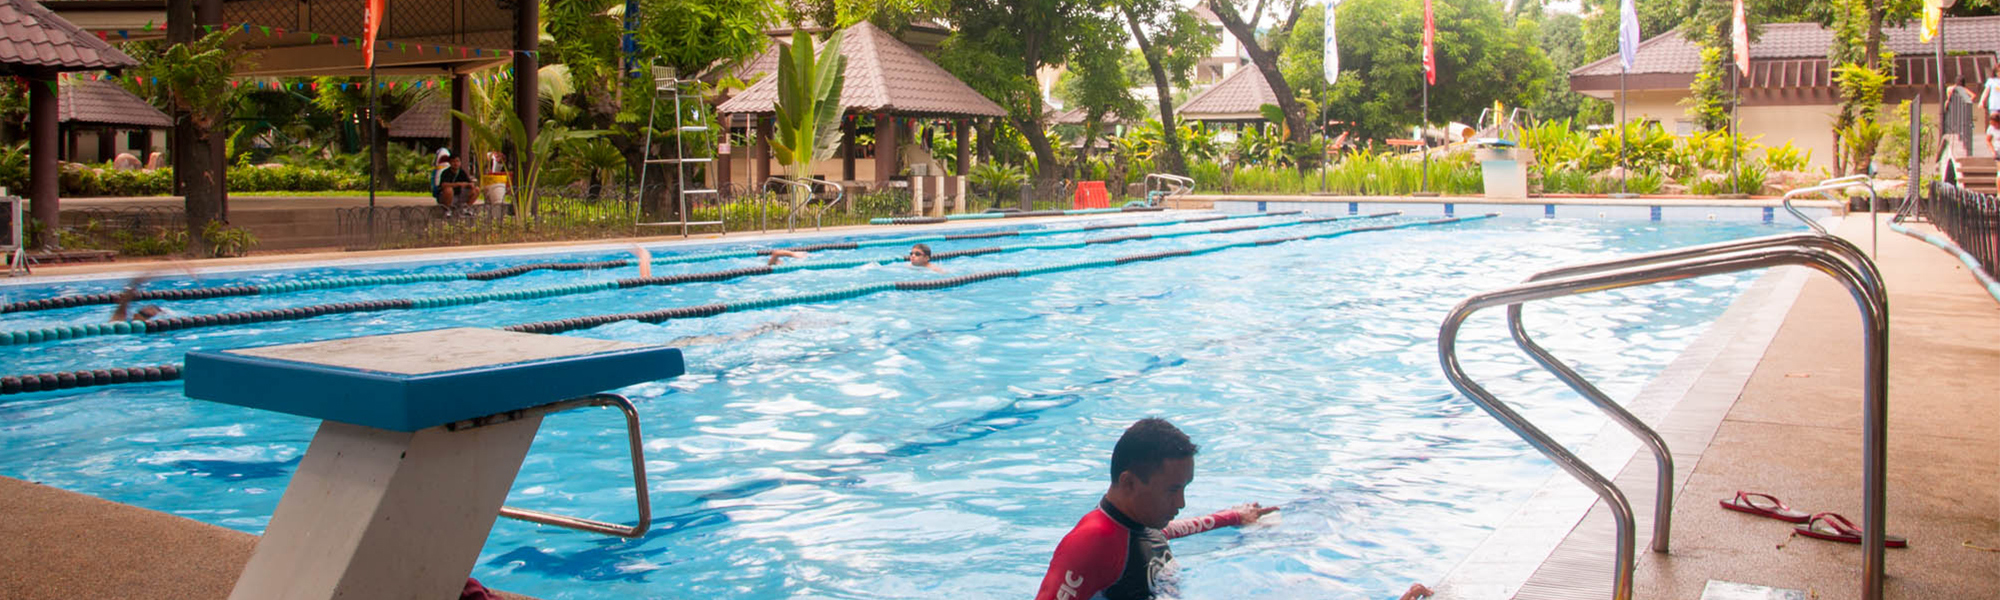 Rave water park pools for Garden city swimming pool hours